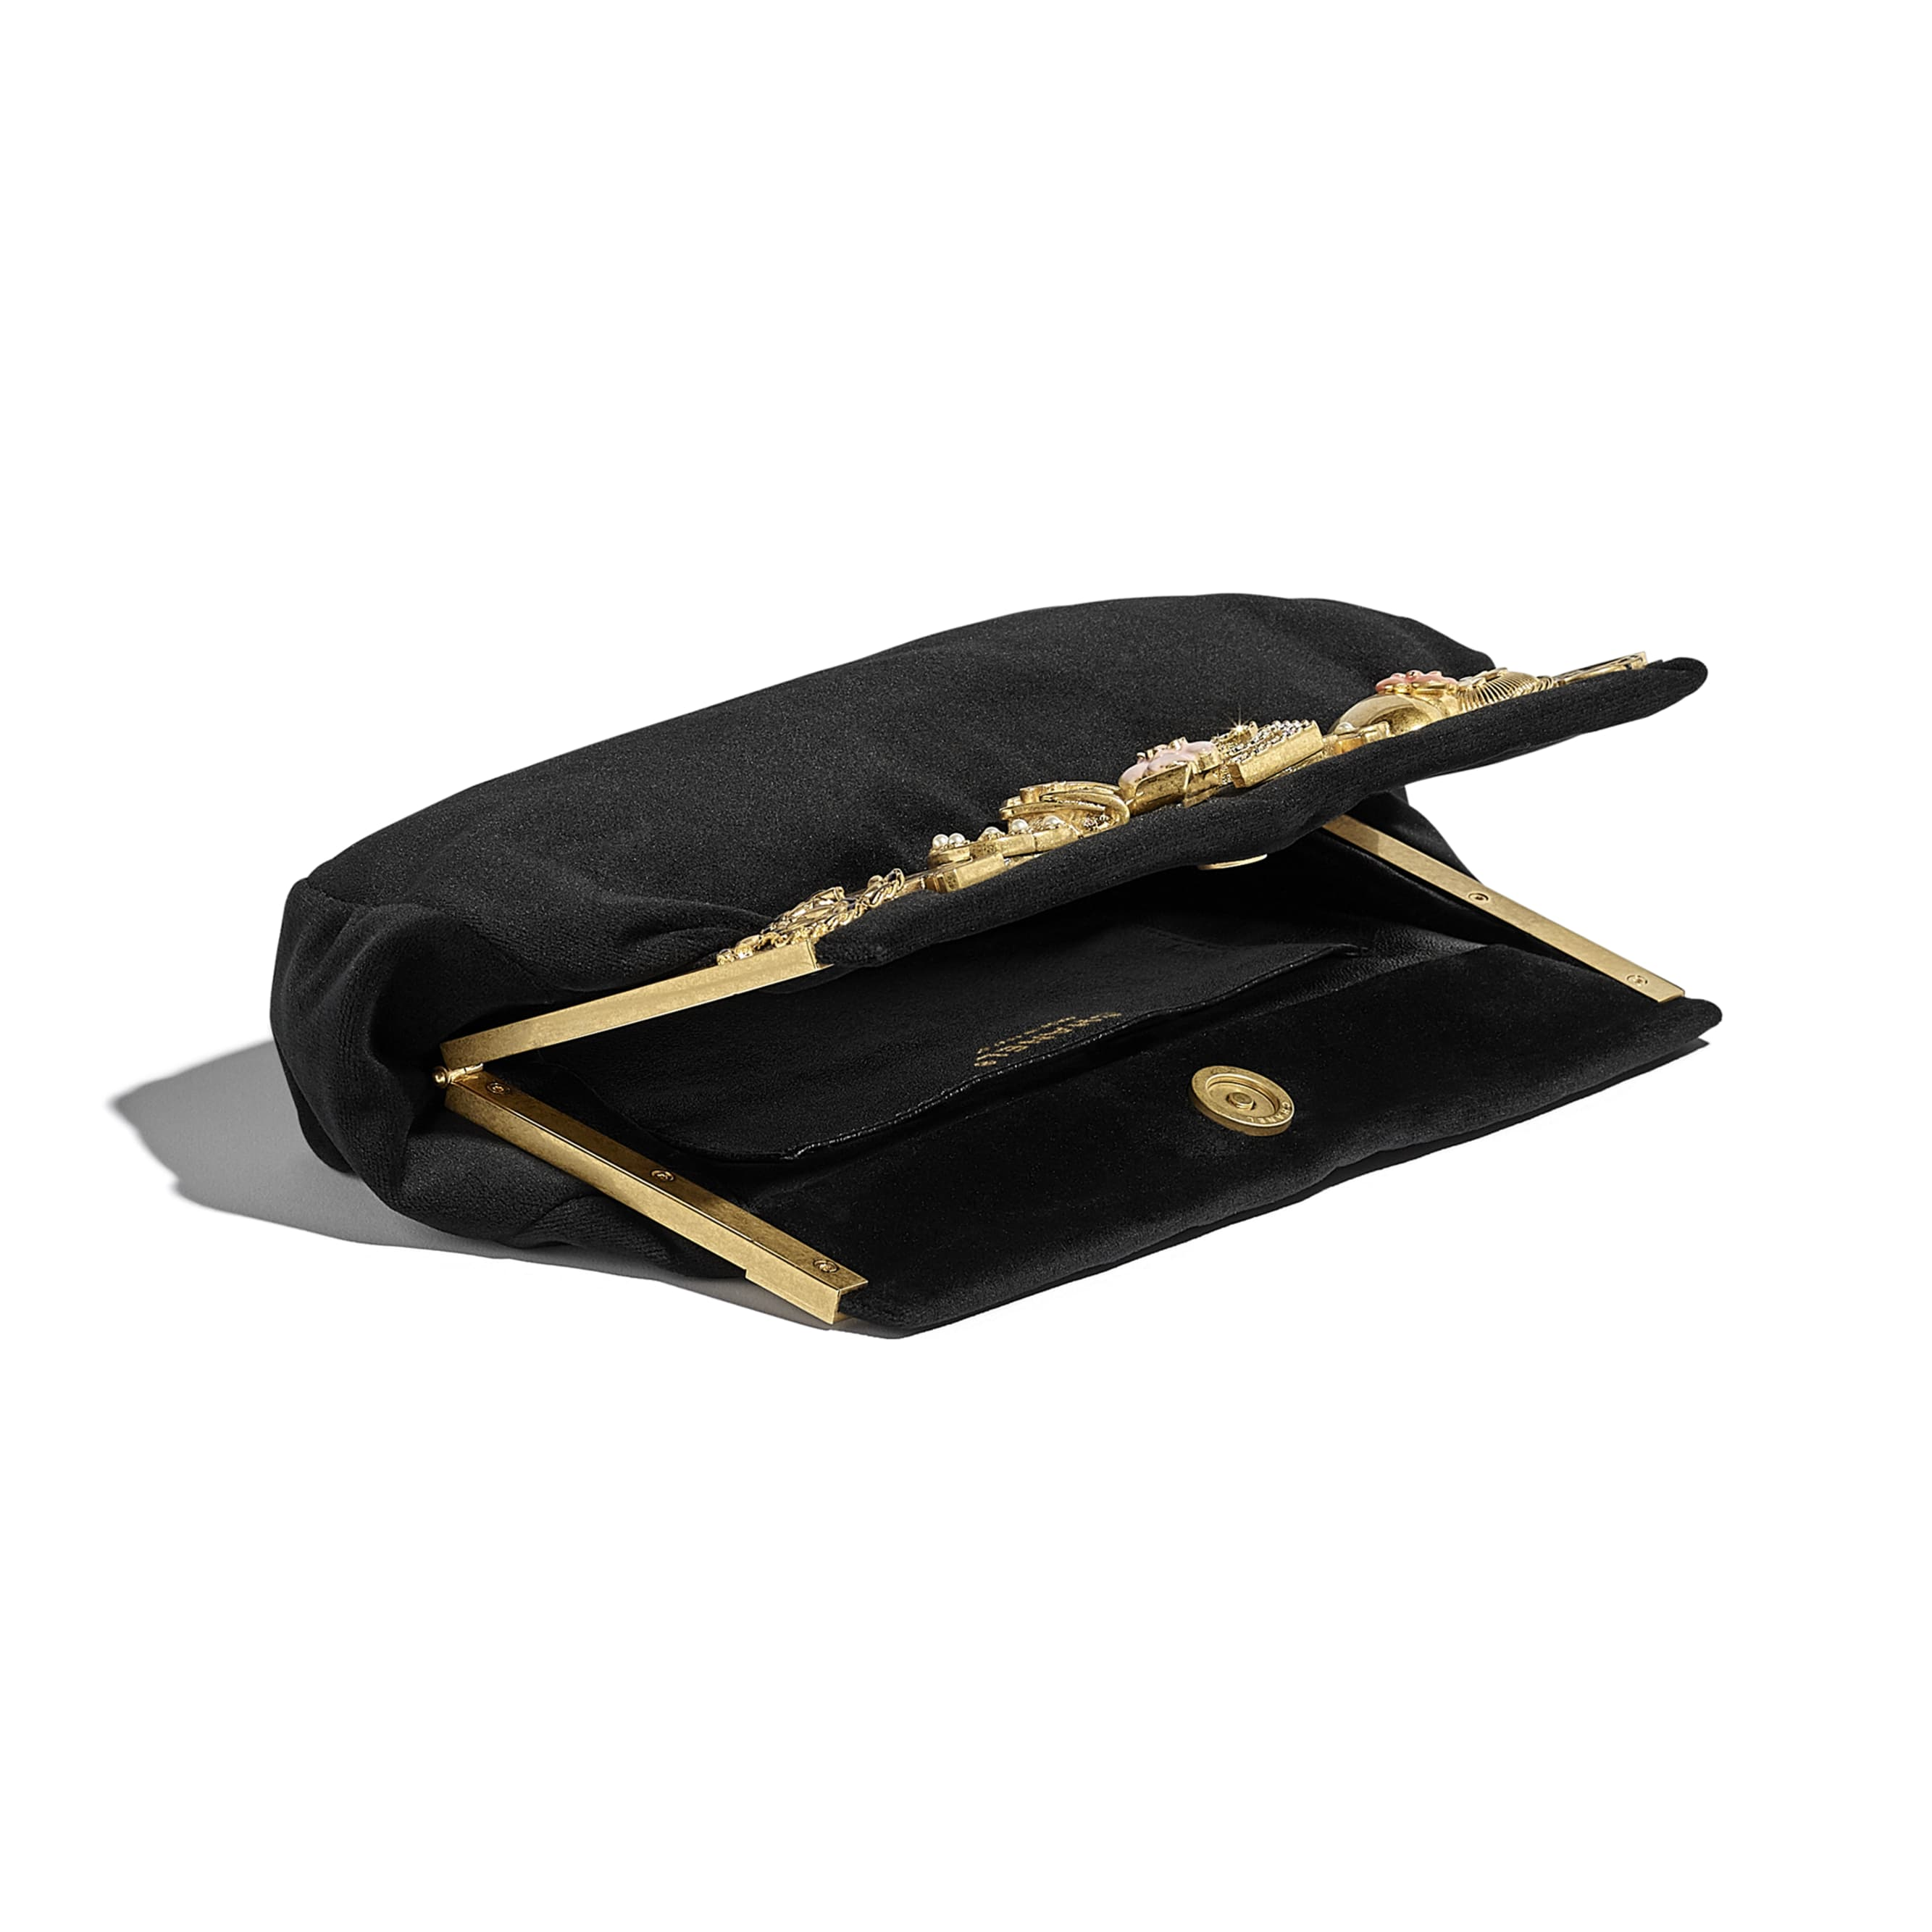 Clutch - Black - Velvet, Brass, Charms & Gold-Tone Metal - CHANEL - Other view - see standard sized version